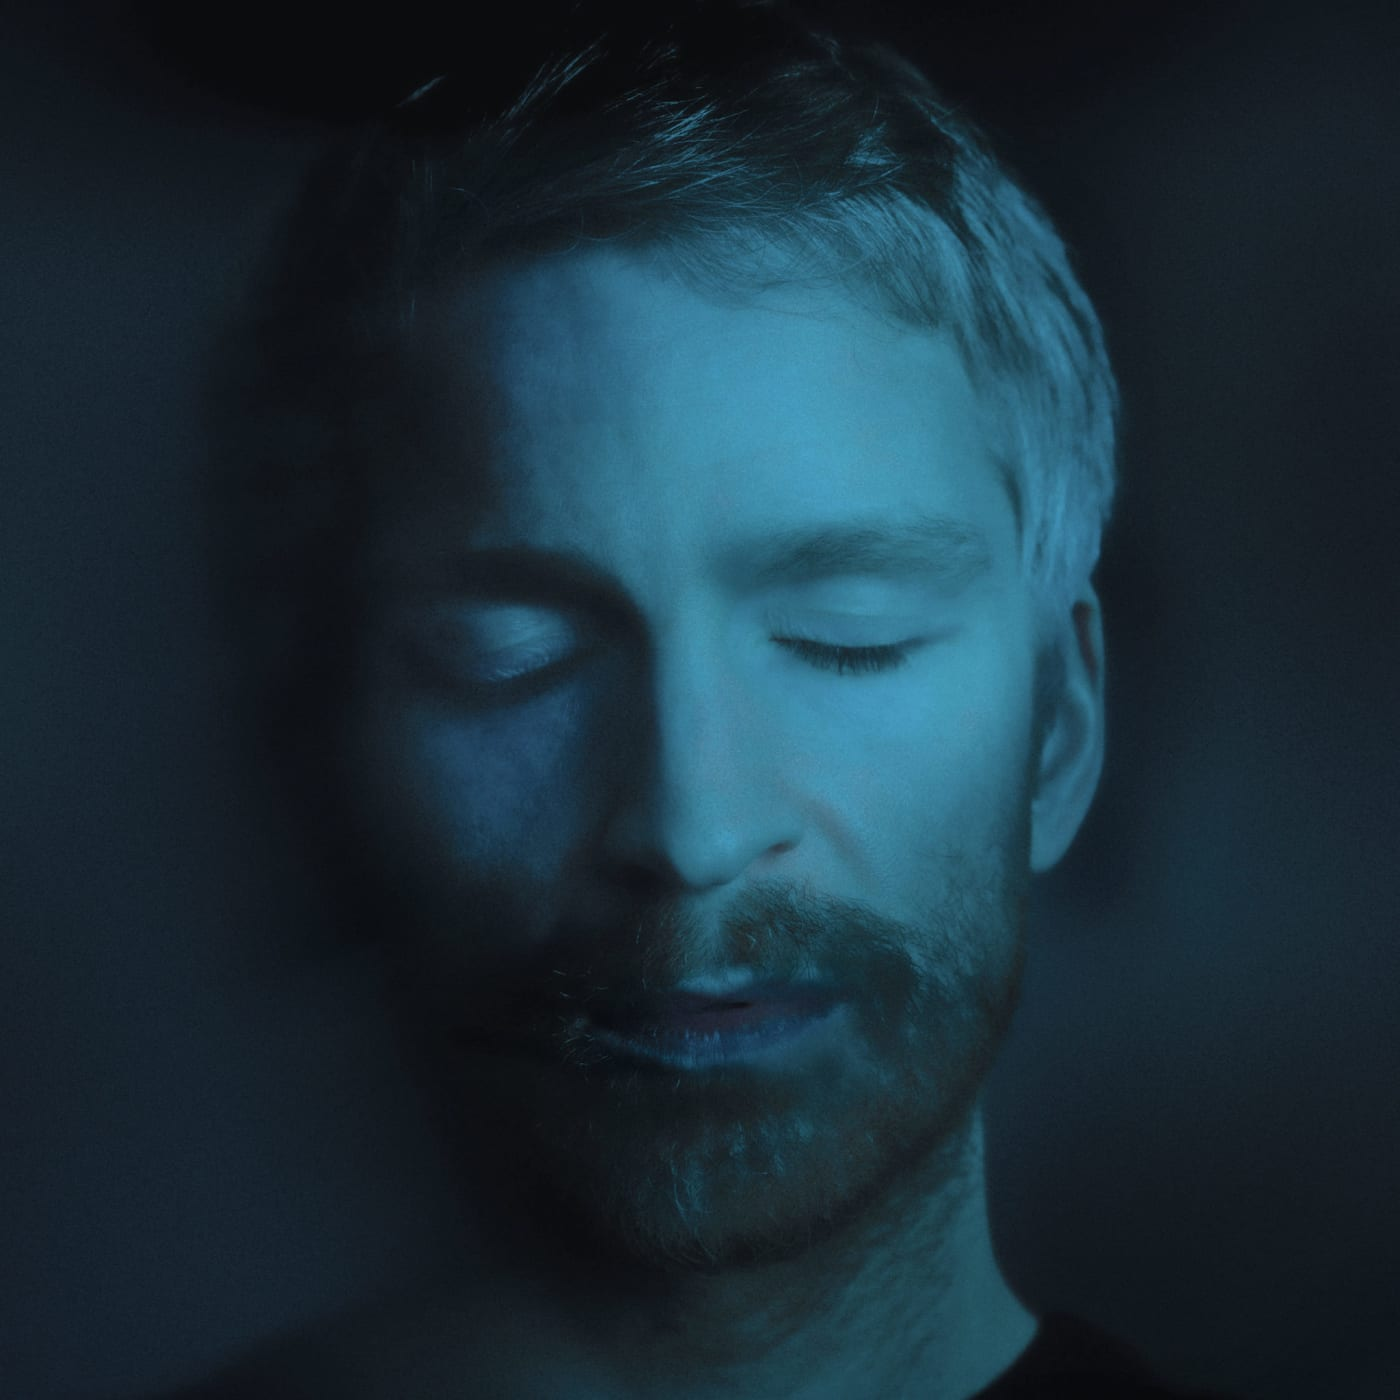 olafur-arnalds-some-kind-of-peace-albumart-2048x2048_BUYTHEWAX